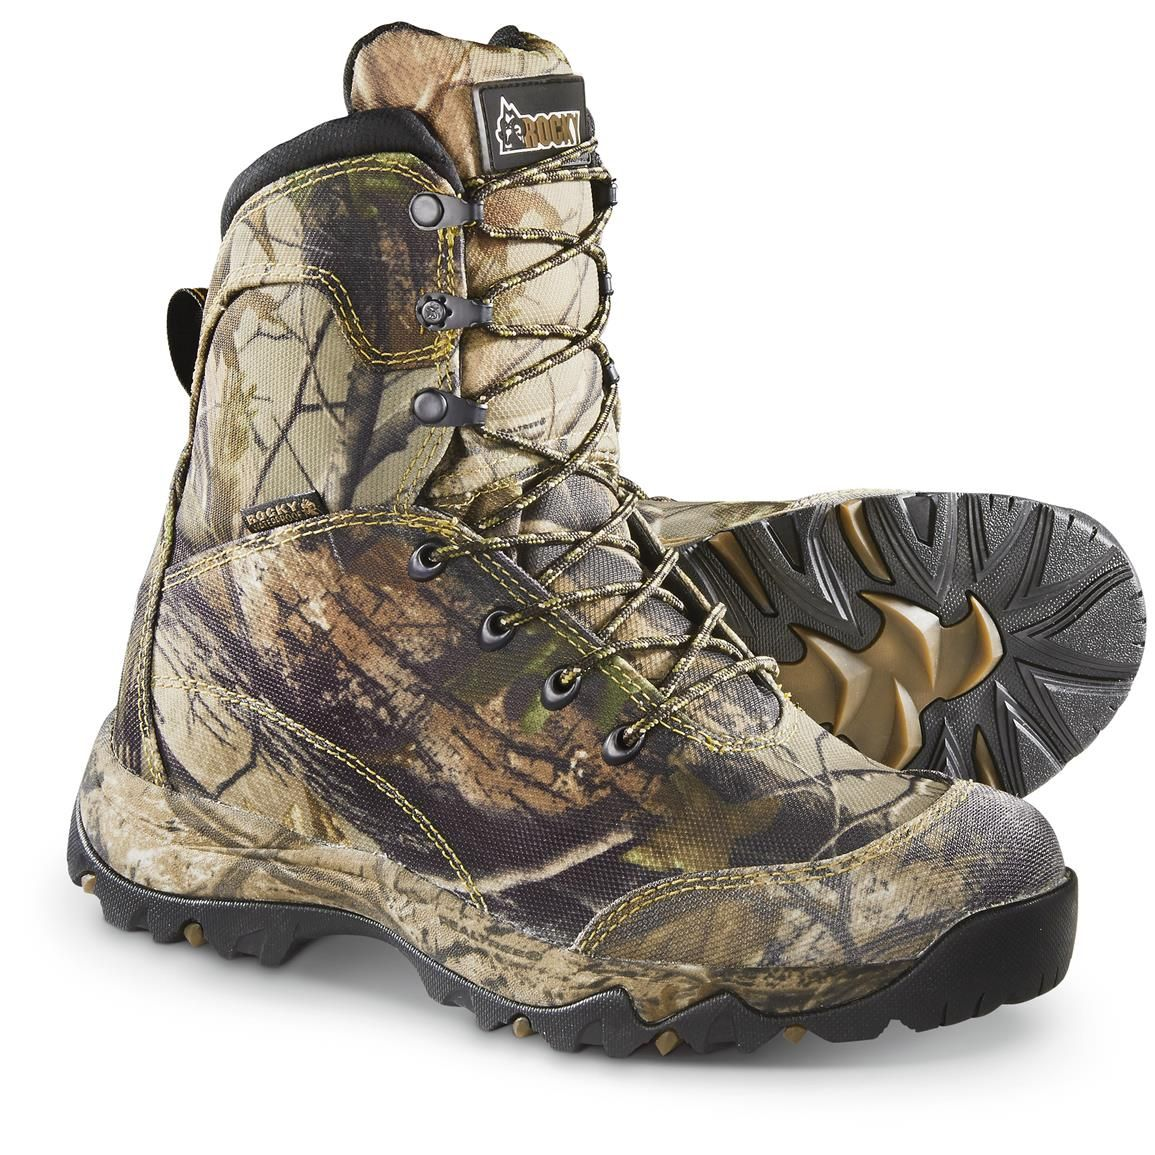 Sportsman's Guide has your Rocky GameSeeker Hunting Boots, Realtree APG  available at a great price in our Hunting Boots collection